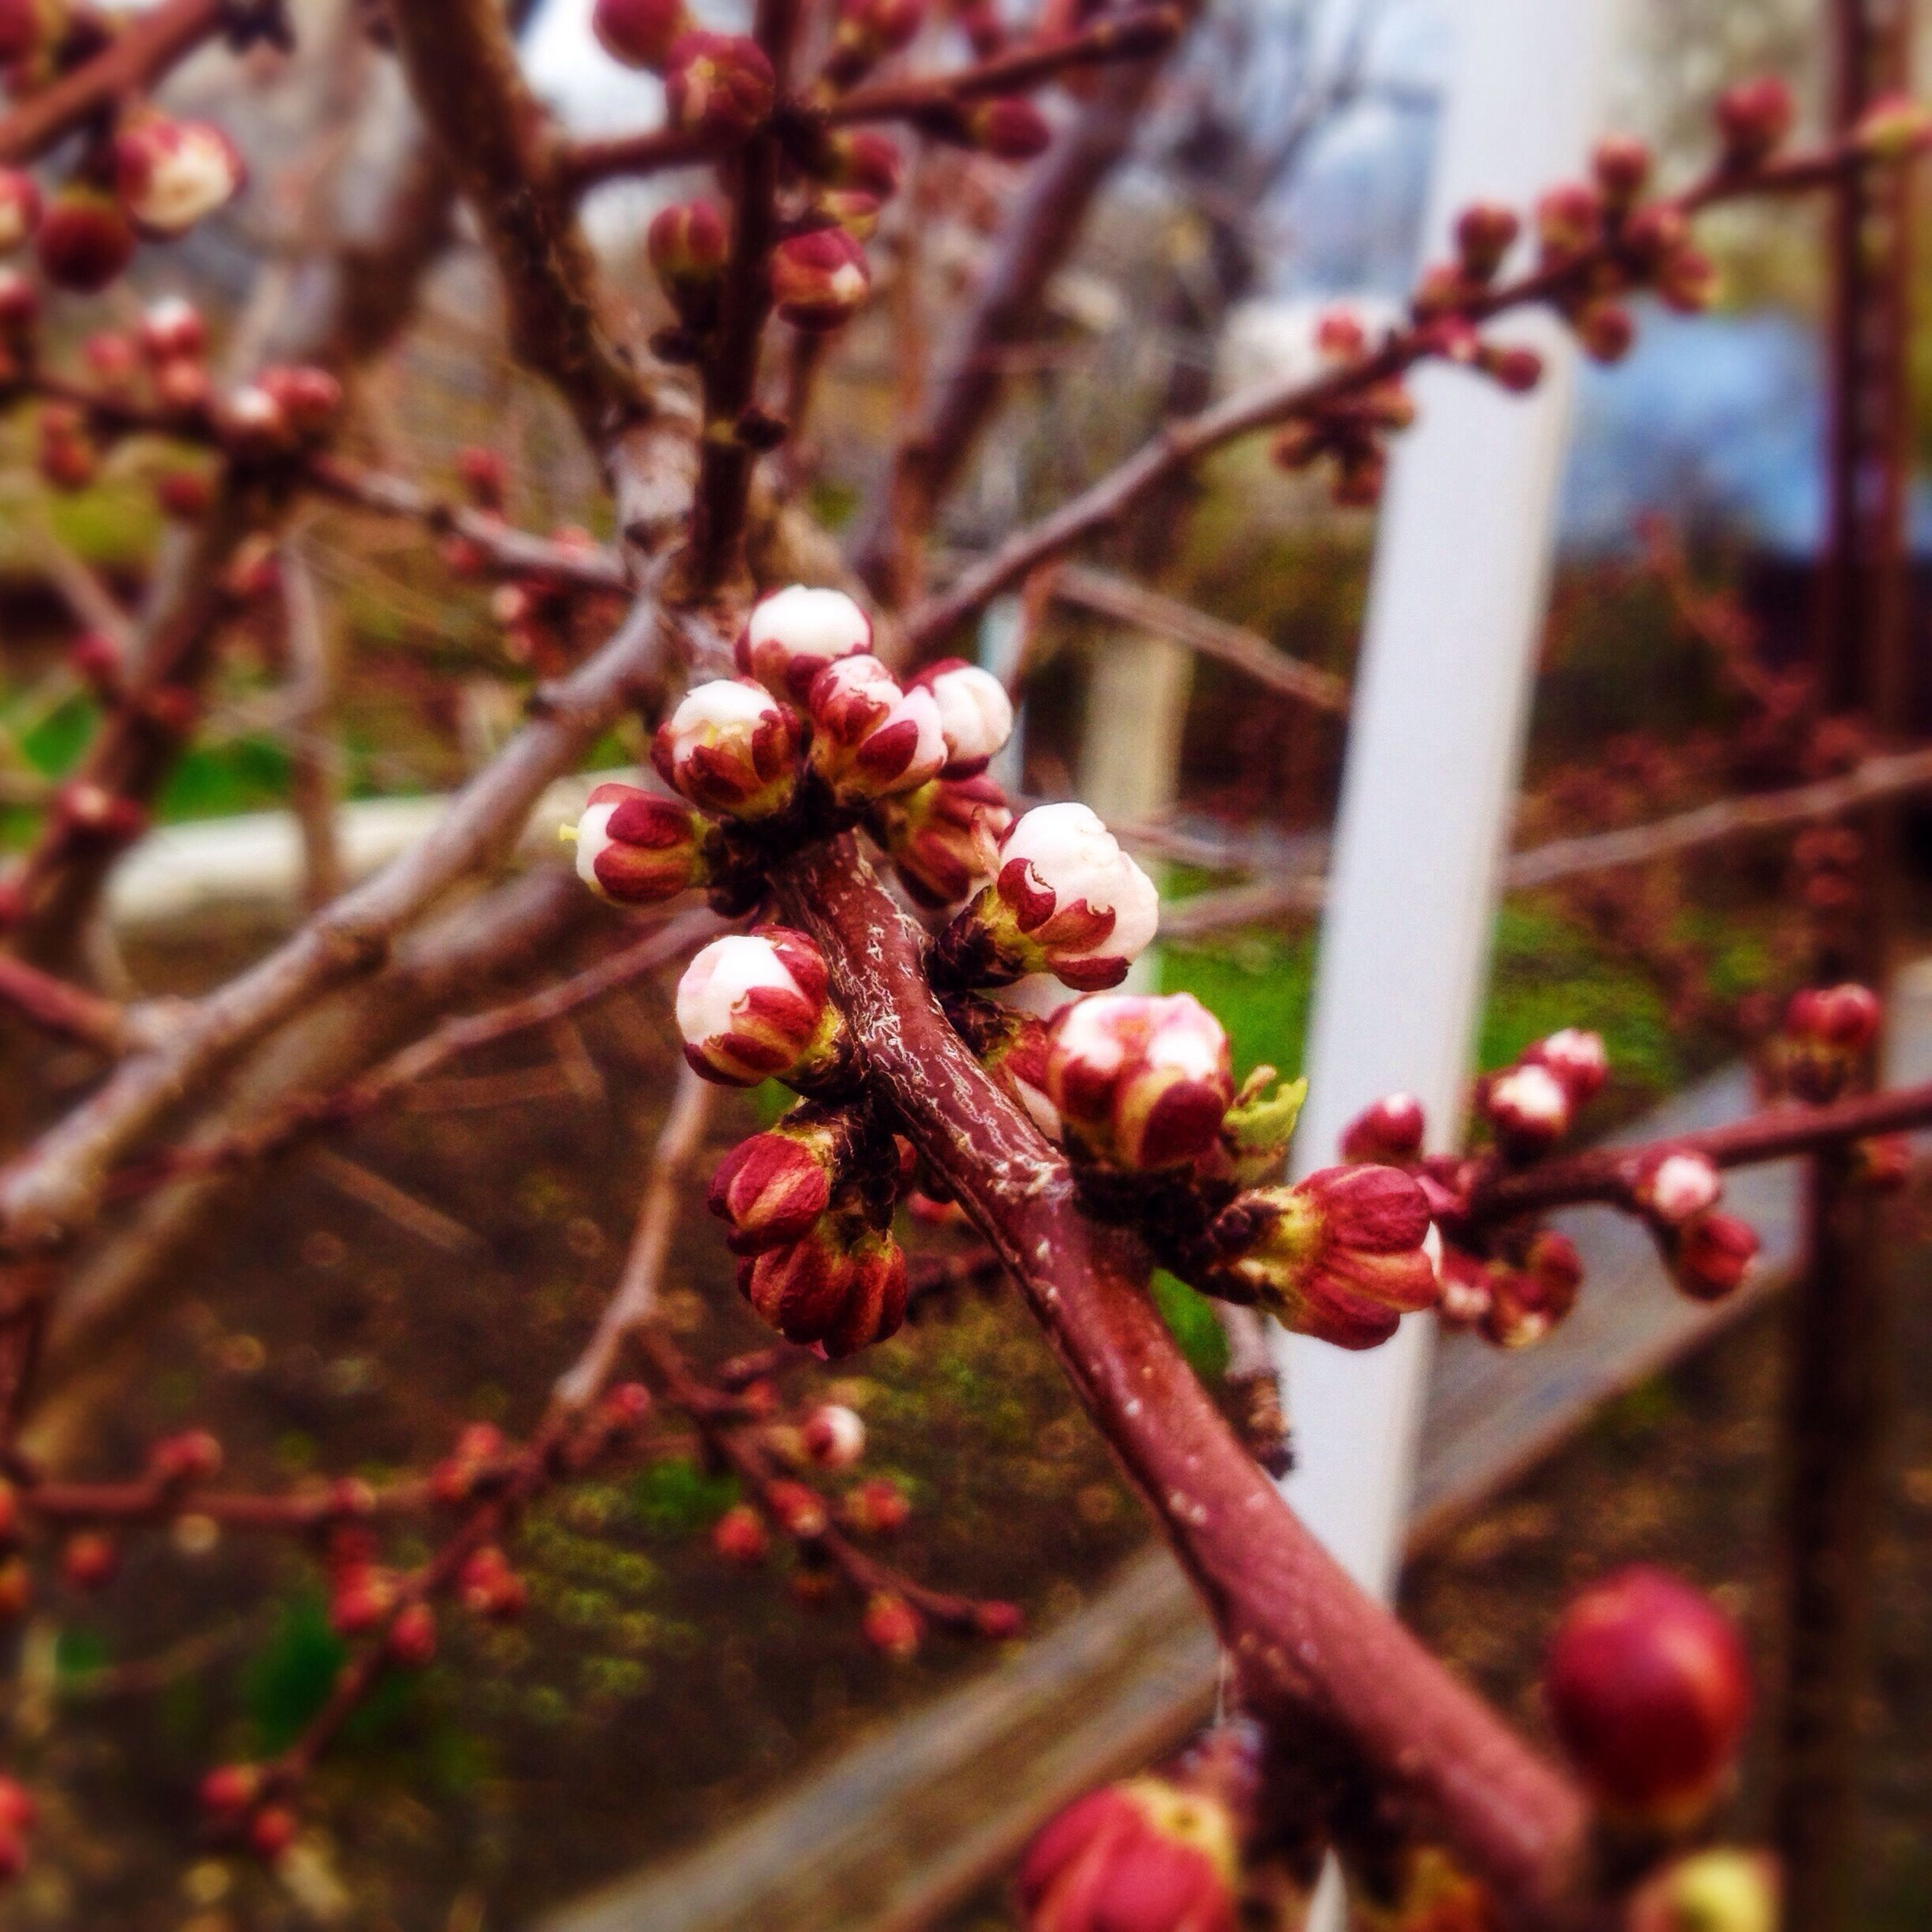 branch, focus on foreground, flower, growth, close-up, tree, freshness, twig, pink color, nature, fragility, beauty in nature, selective focus, bud, cherry tree, red, day, outdoors, blossom, stem